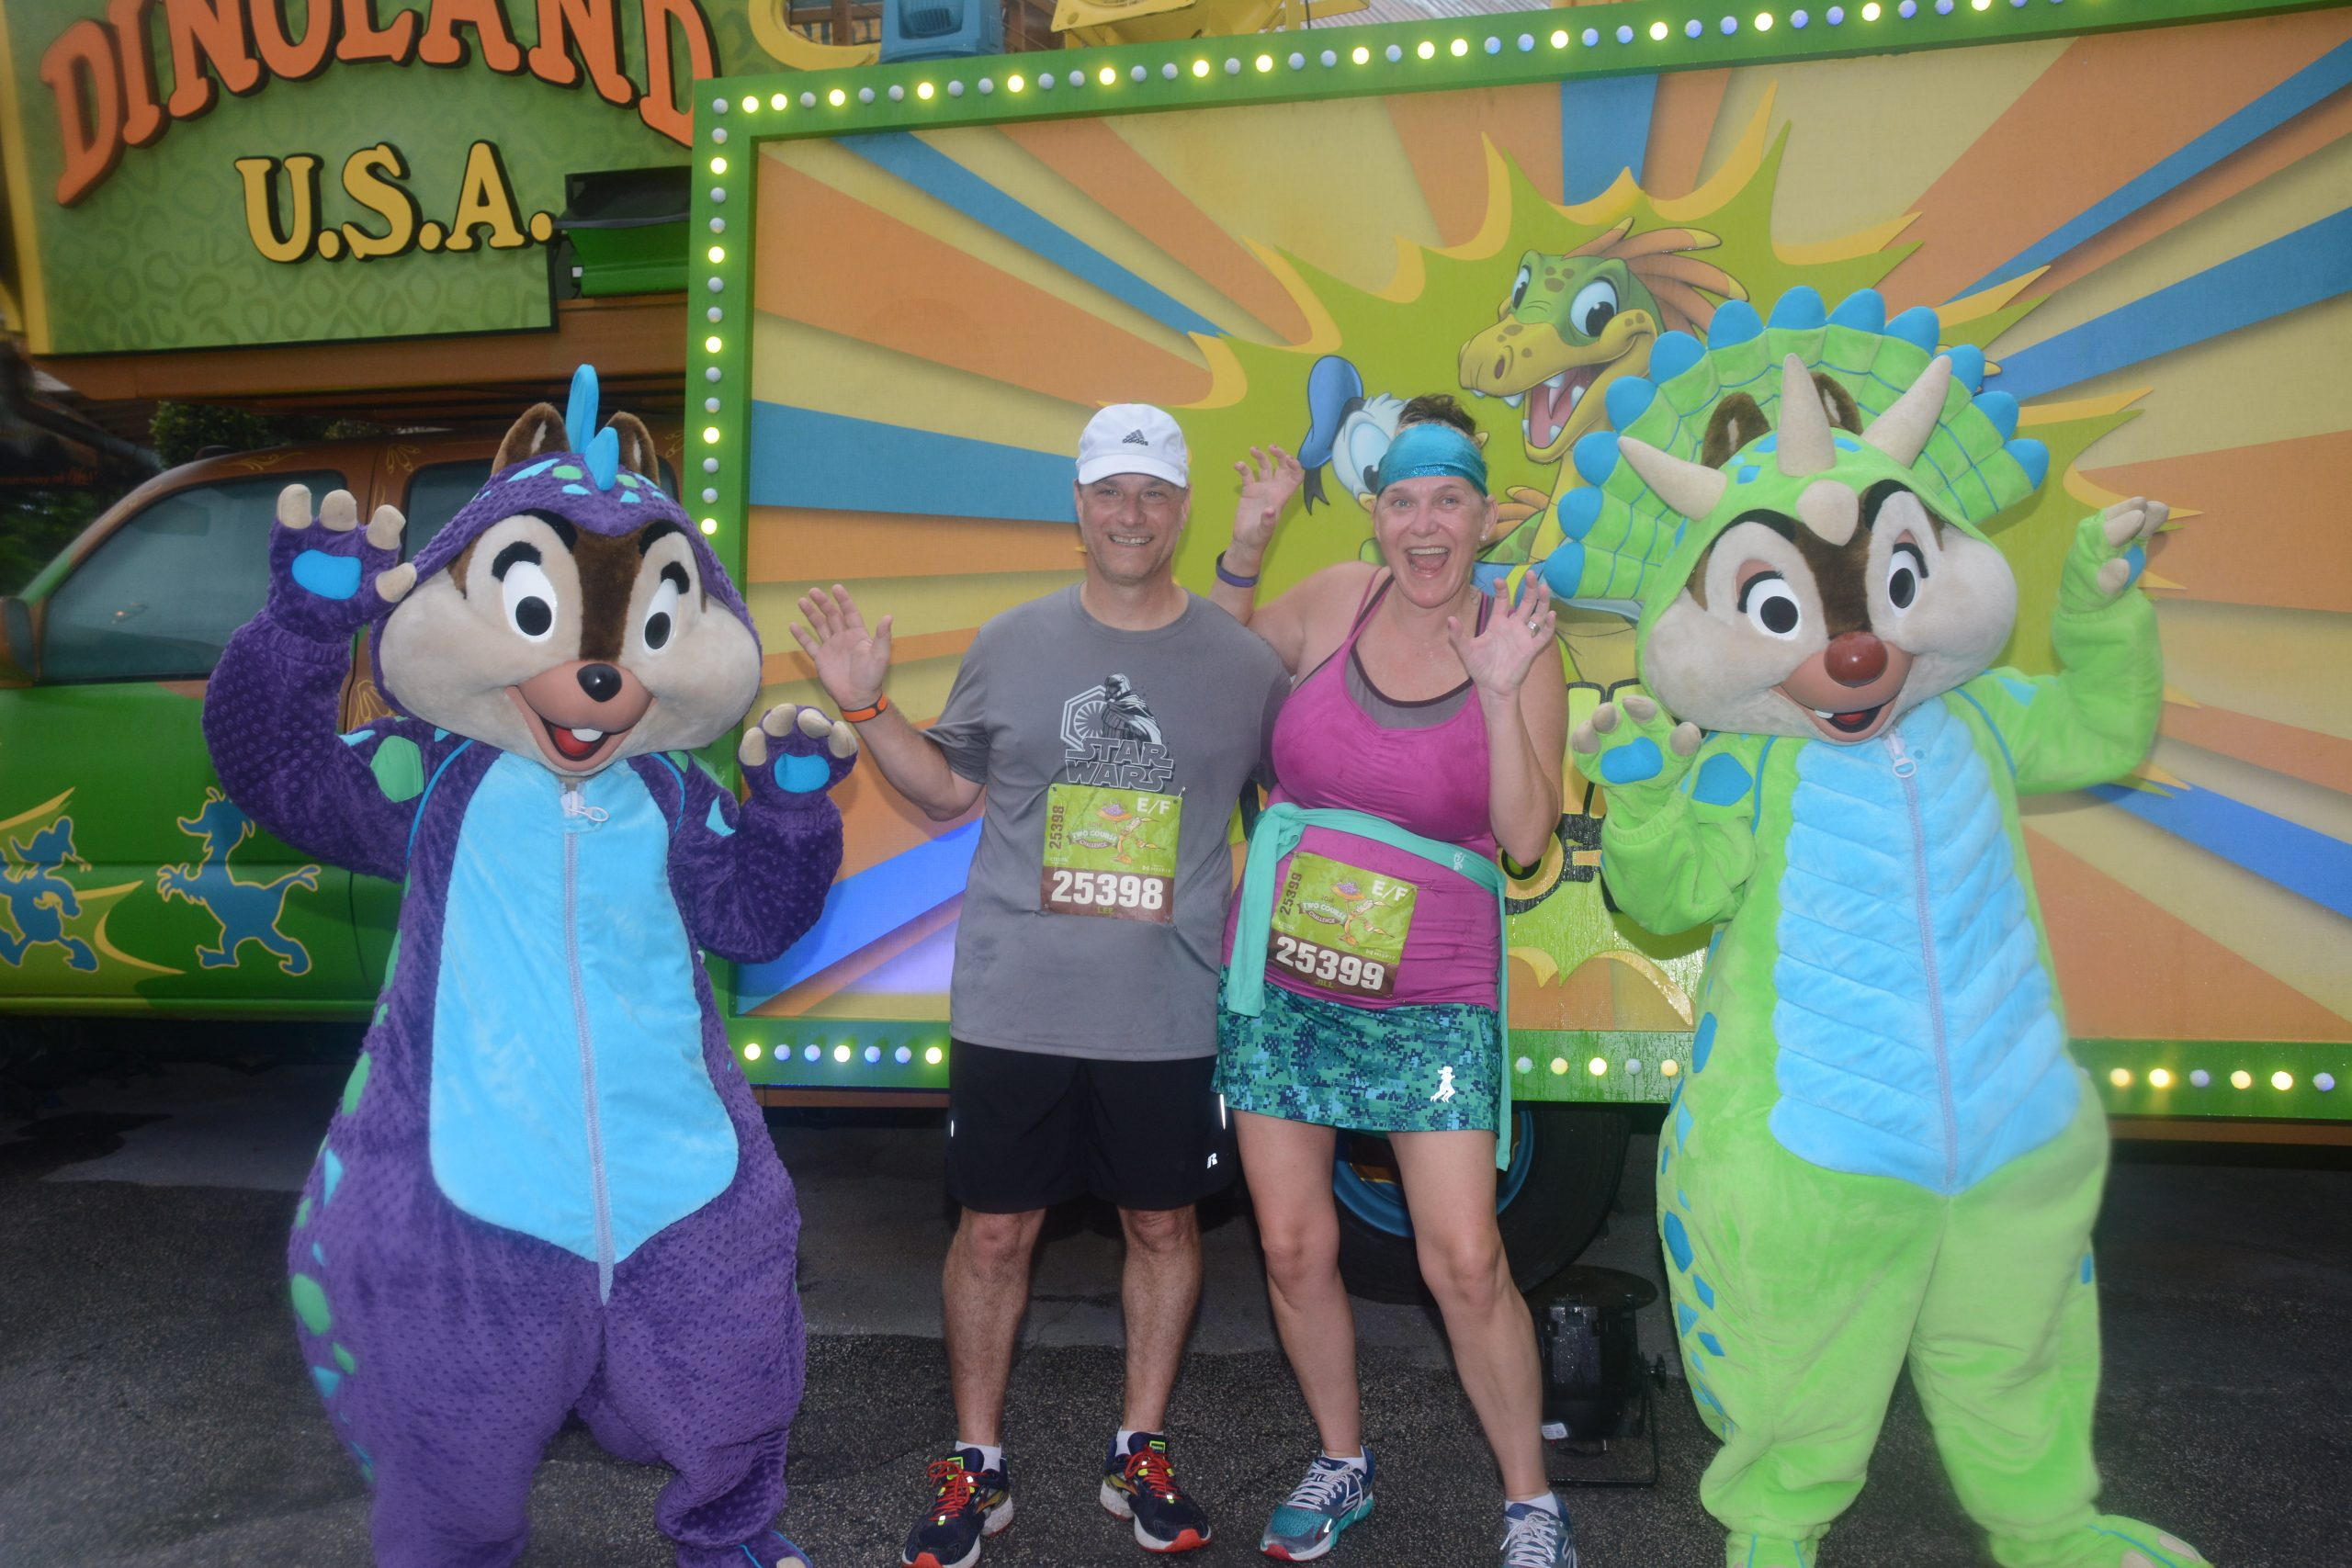 Seeing Chip and Dale with runDisney.